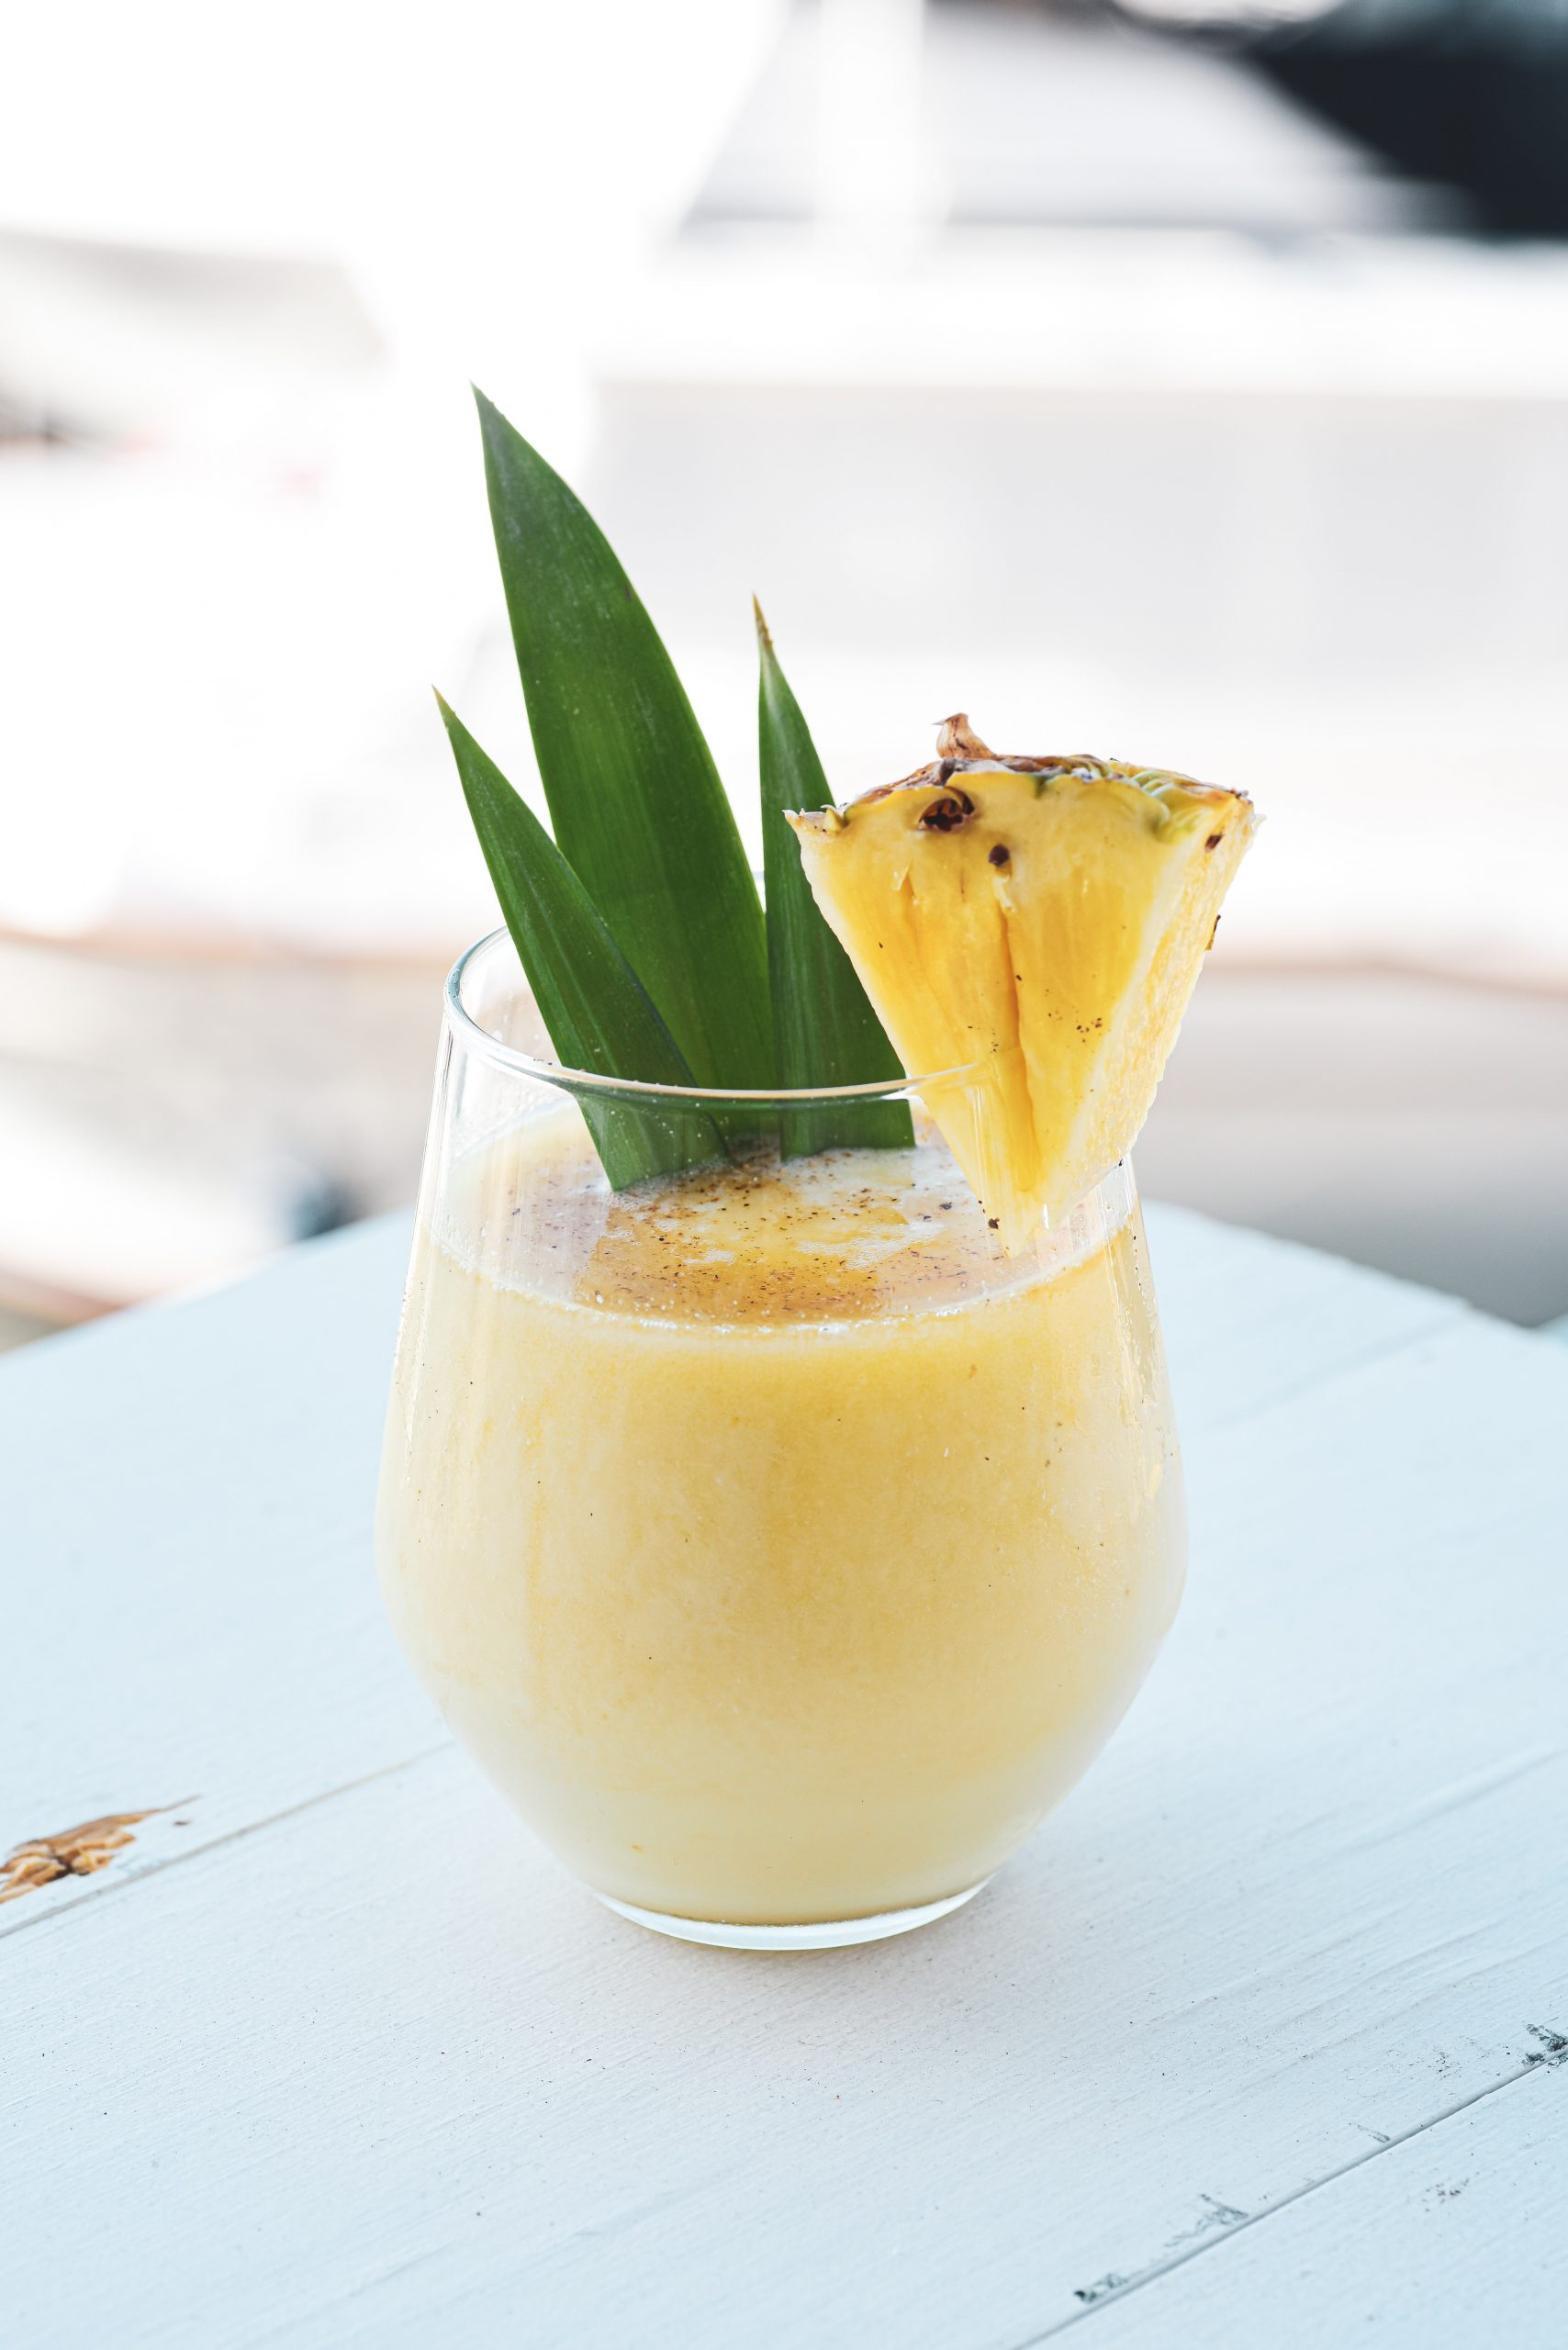 "Ananas Smoothie aus dem Thermomix® - <span>Photo by <a href=""https://unsplash.com/@yesmorecontent?utm_source=unsplash&utm_medium=referral&utm_content=creditCopyText"">YesMore Content</a> on <a href=""https://unsplash.com/s/photos/smoothie?utm_source=unsplash&utm_medium=referral&utm_content=creditCopyText"">Unsplash</a></span>"